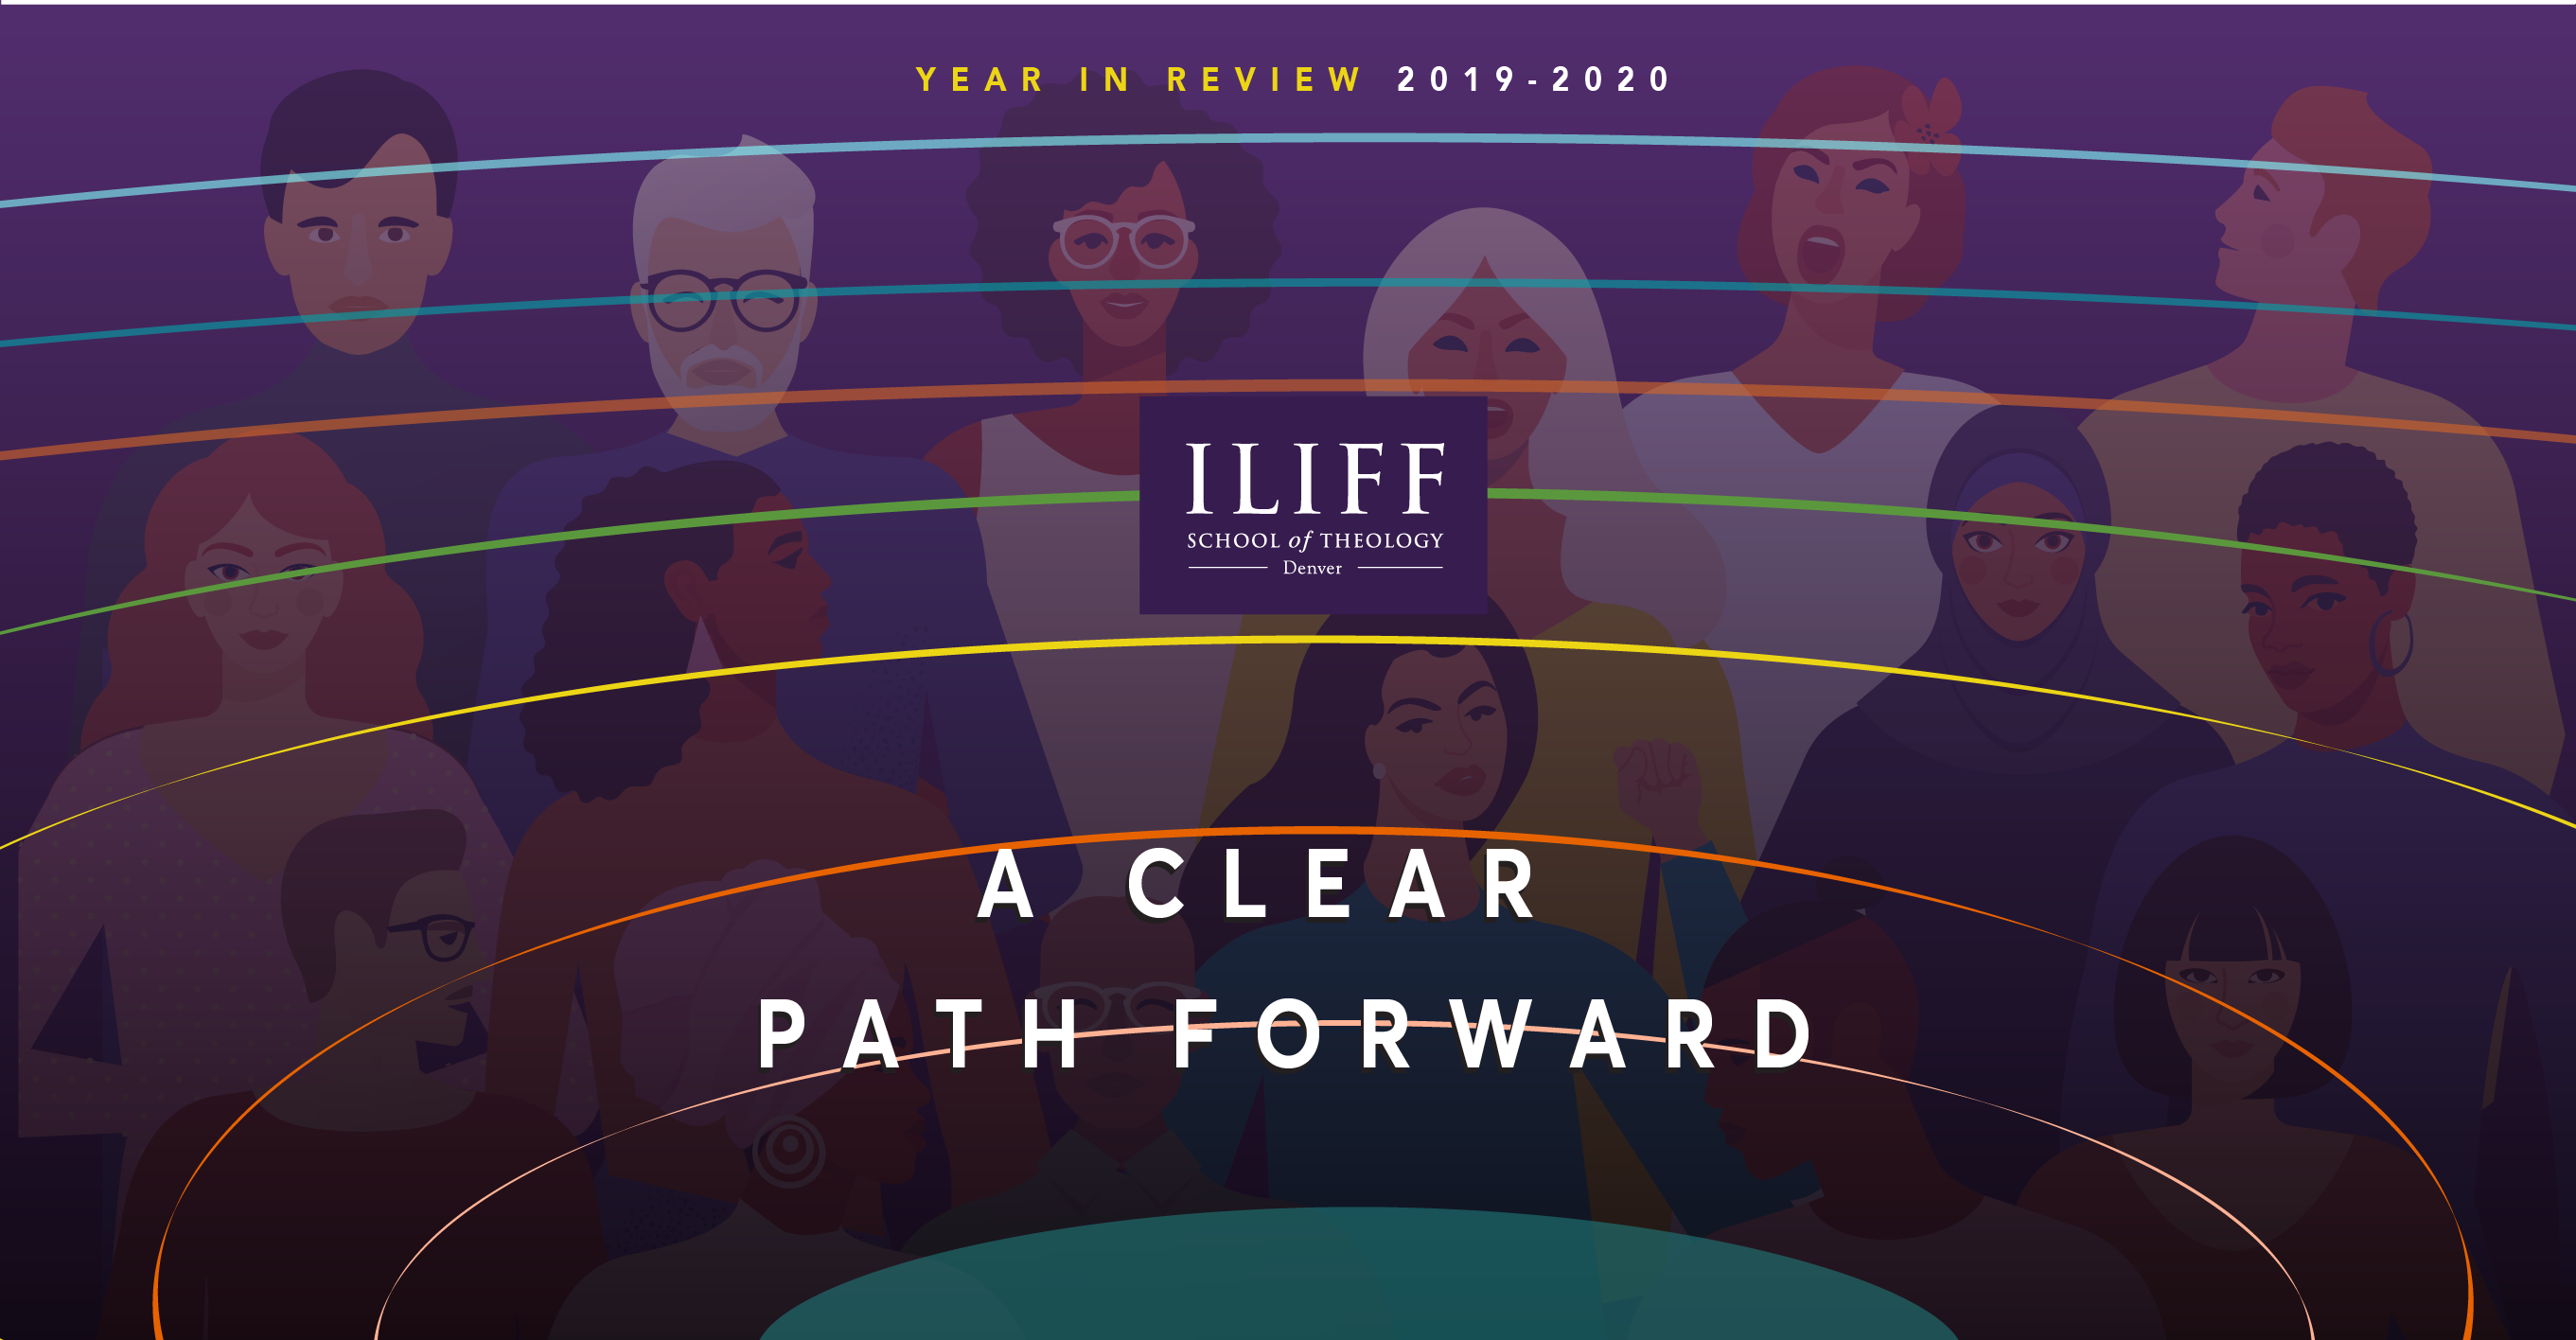 The past, present, and future of Iliff students